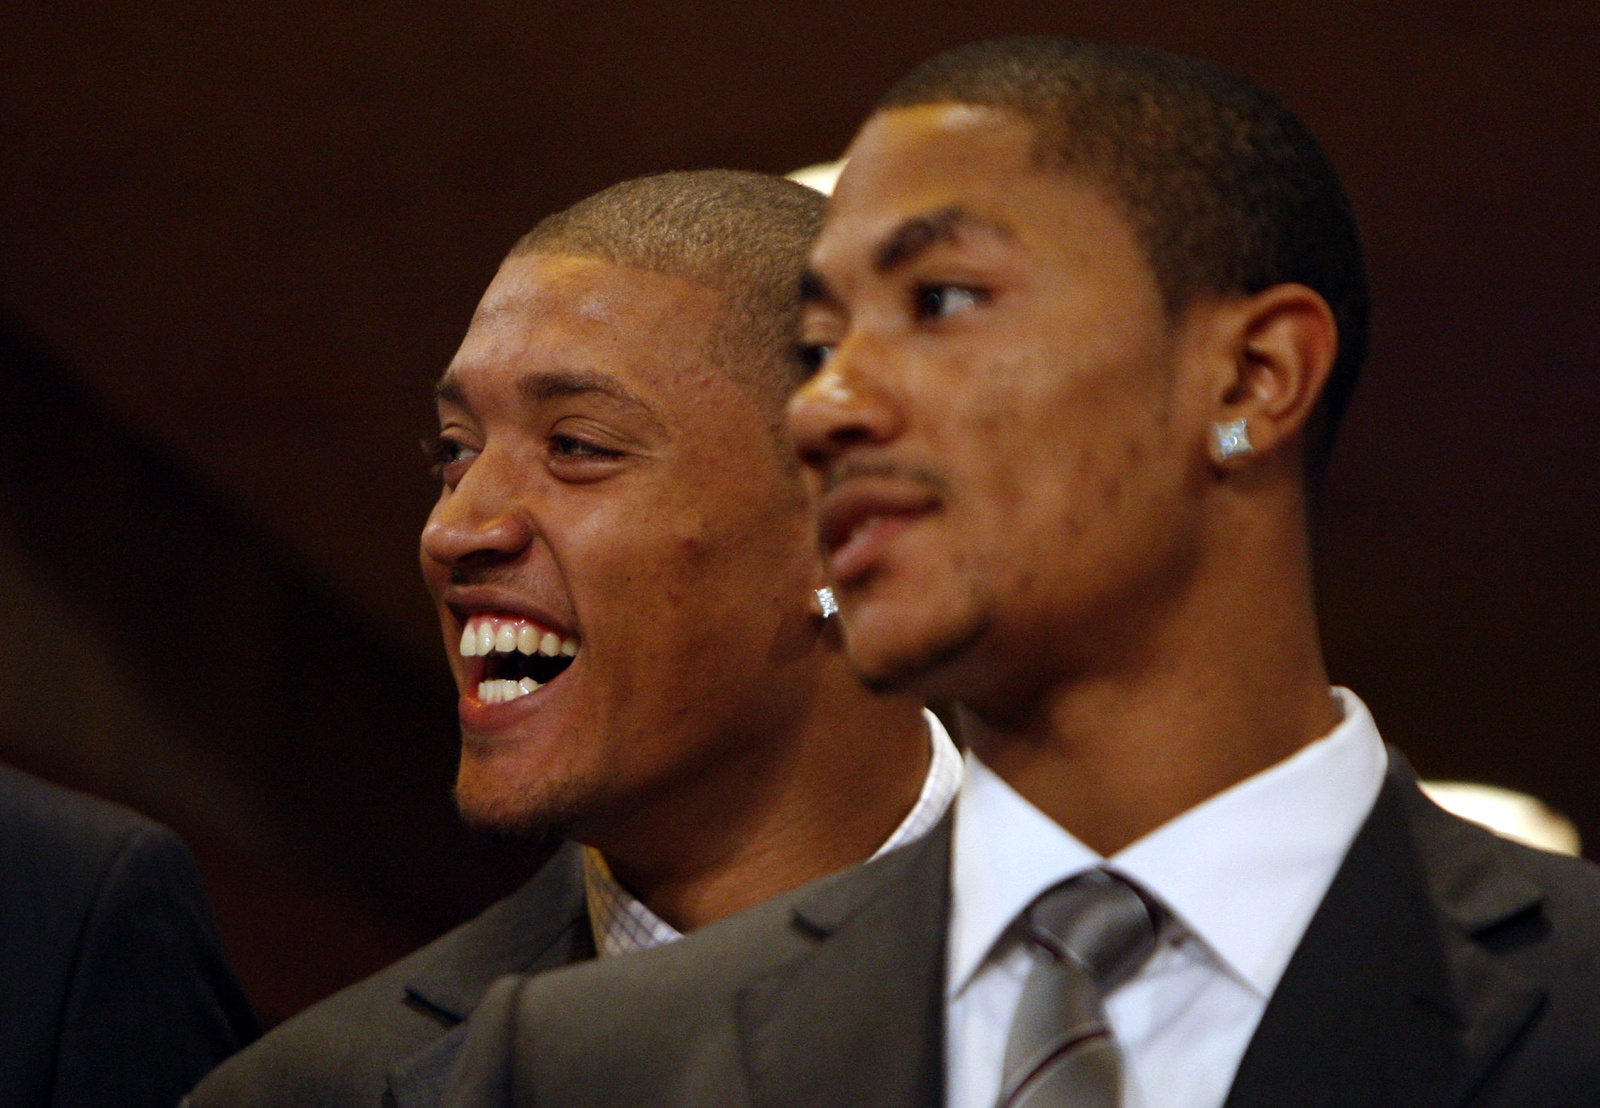 Michael Beasley laughs behind Derrick Rose prior to the 2008 NBA Draft at the WaMu Theatre at Madison Square Garden June 26, 2008 in New York City.